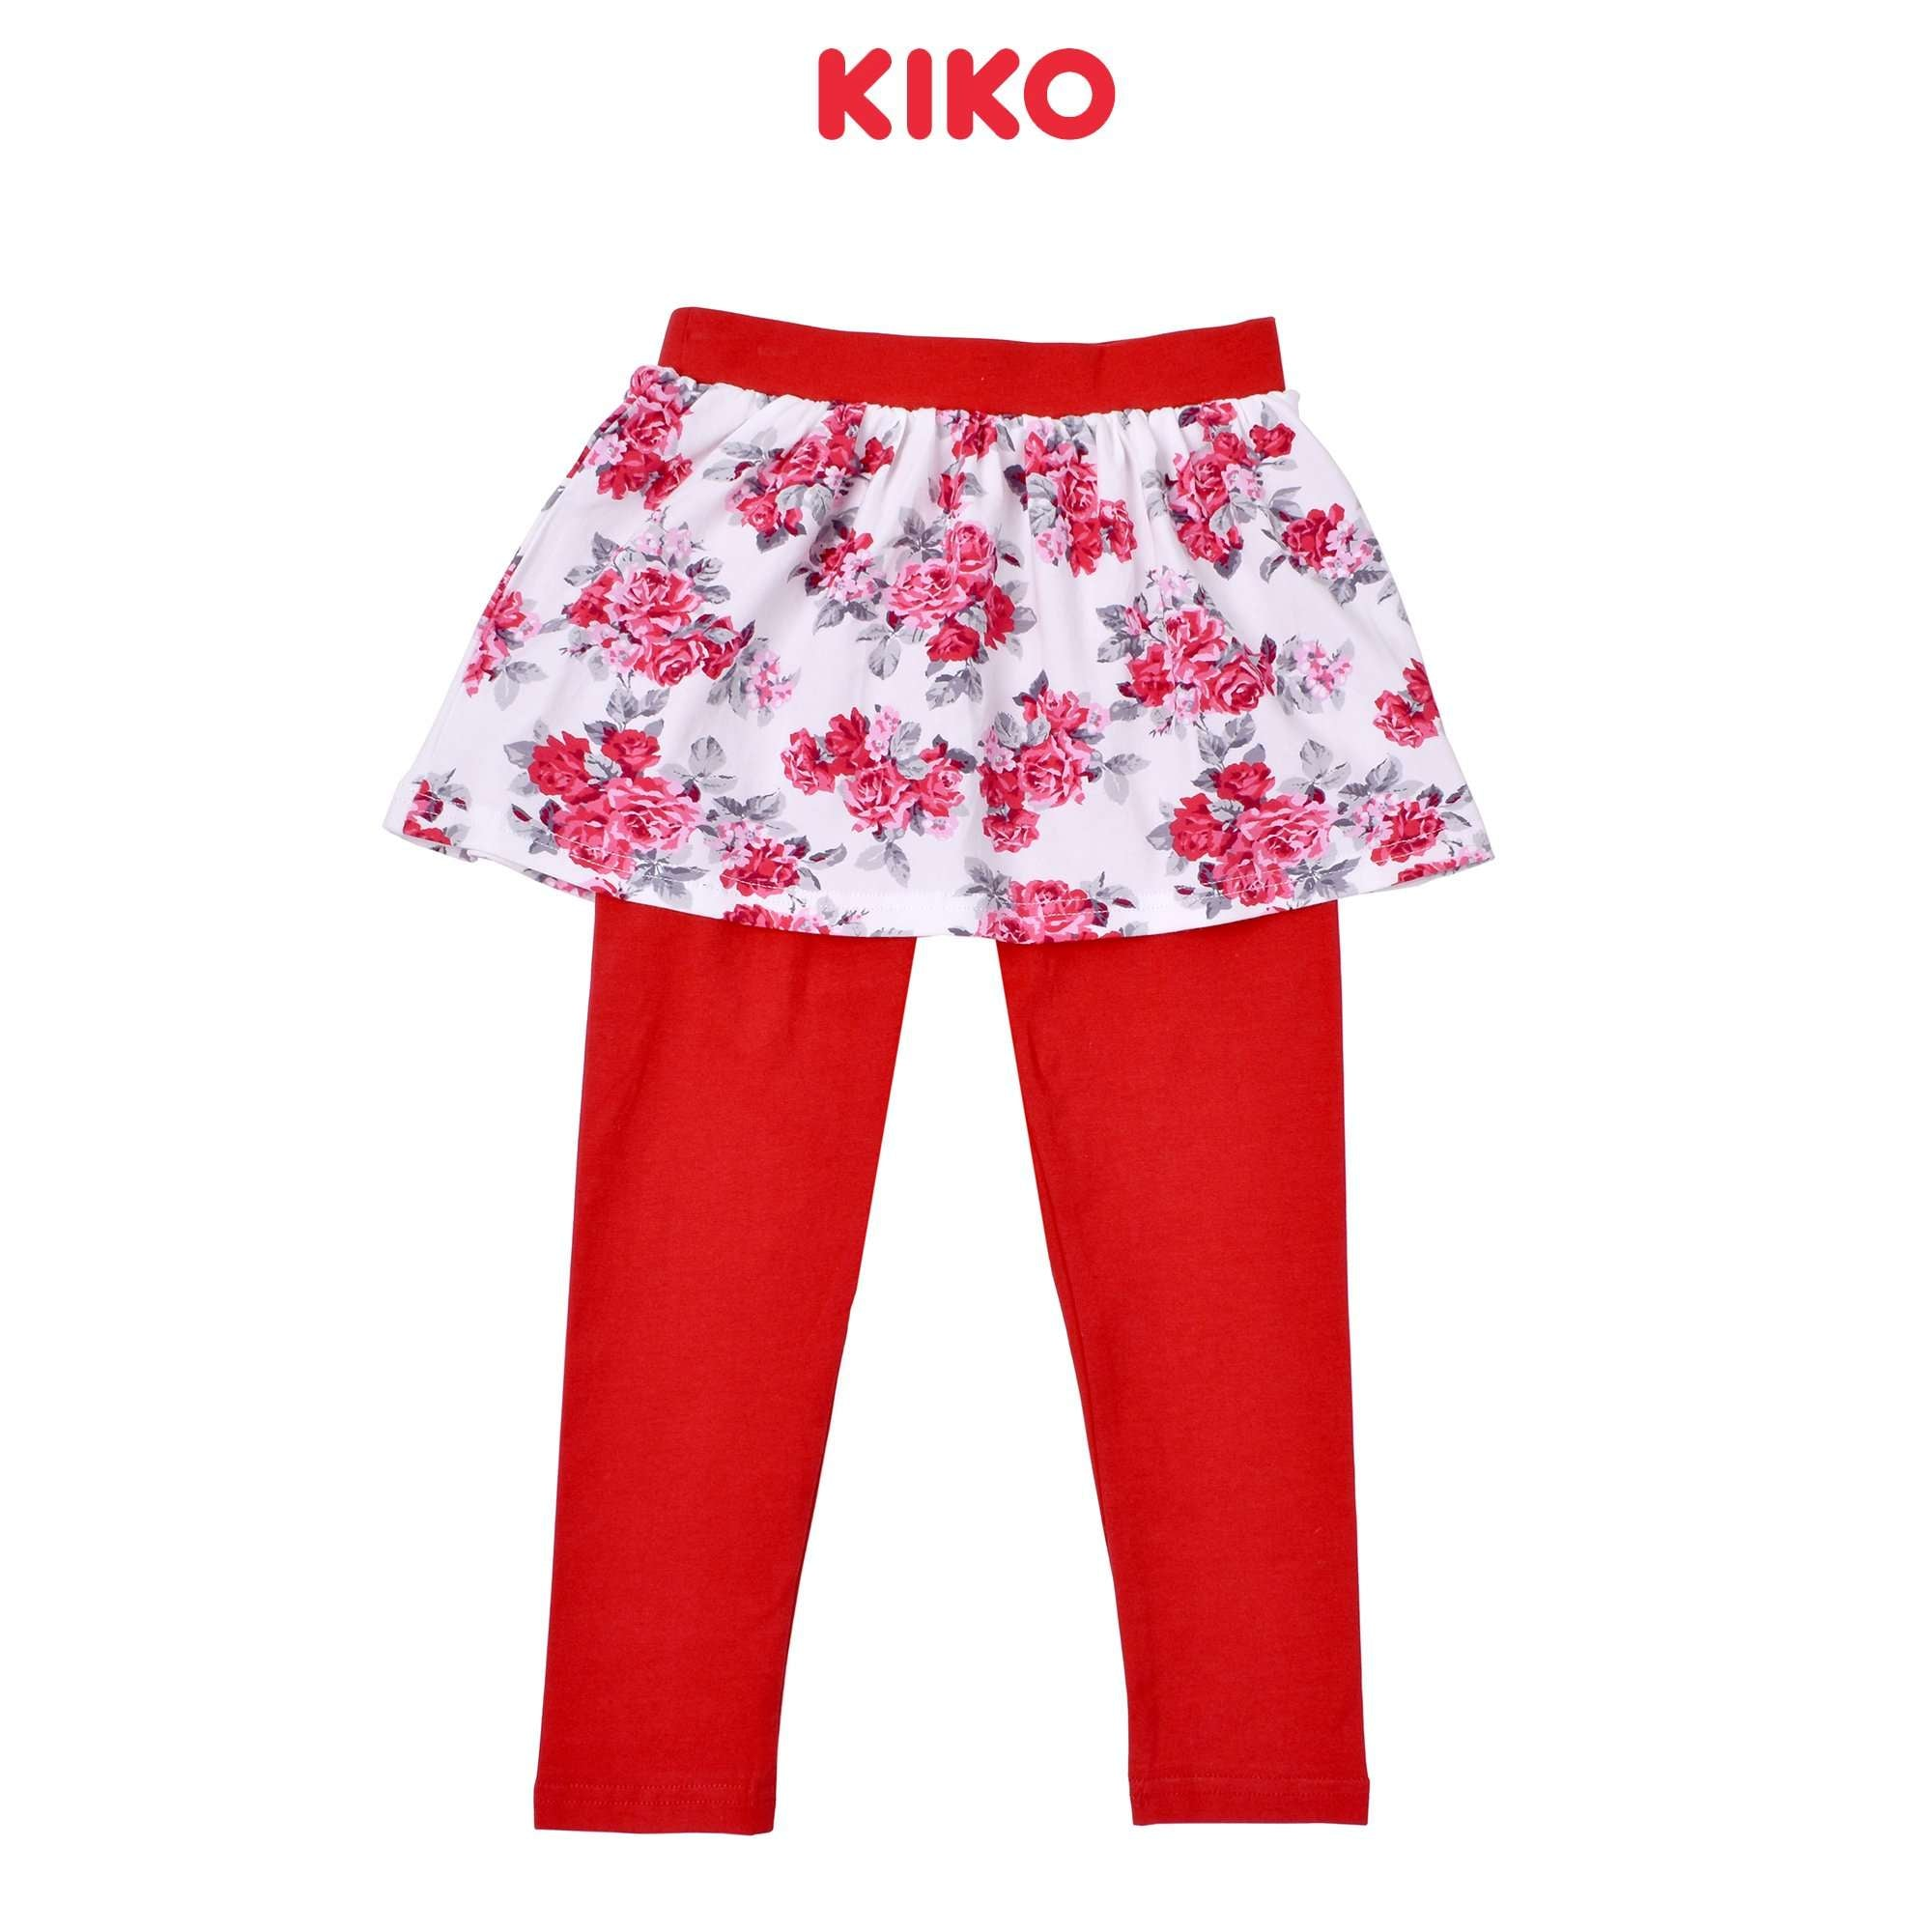 KIKO Girl Skirt Legging Knit -Red 126112-291 : Buy KIKO online at CMG.MY